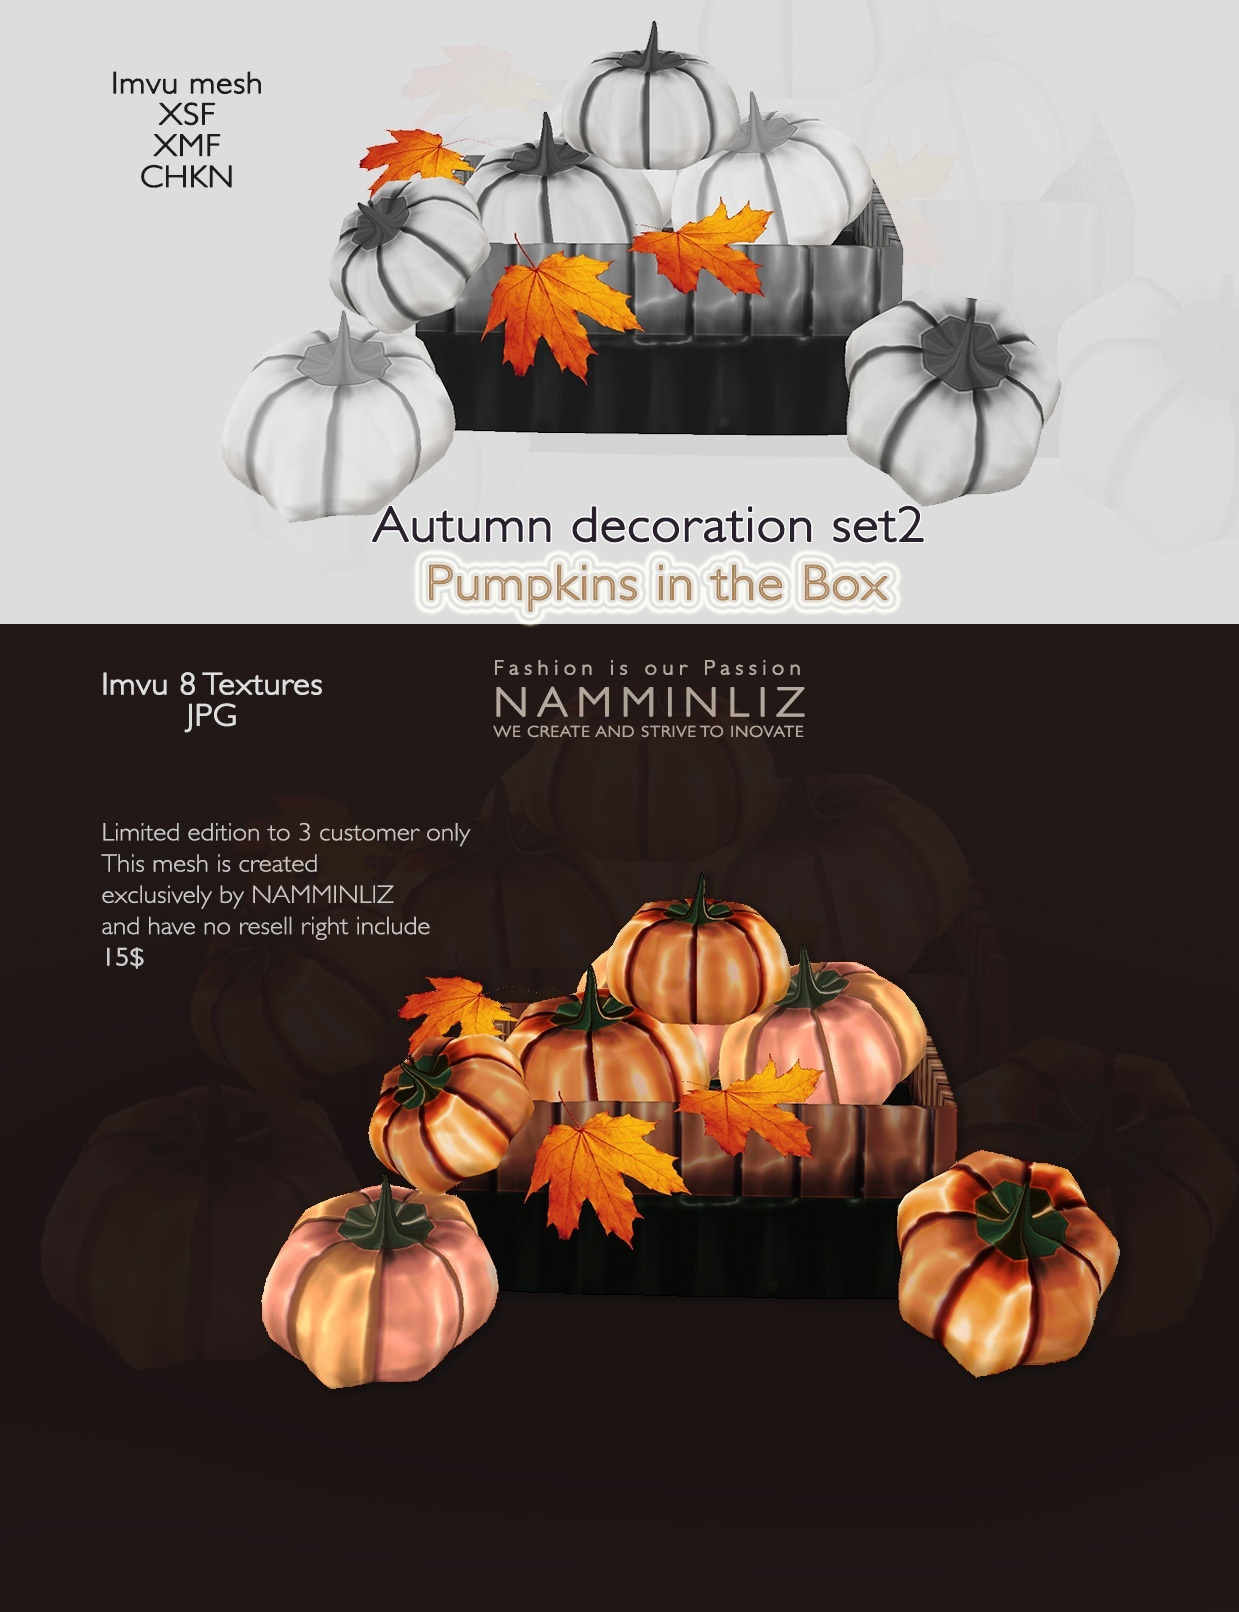 imvu 3D Mesh Autumn decor Set2 ( SXF, XMF, CHKN, JPG, Easy Guide) 0/3